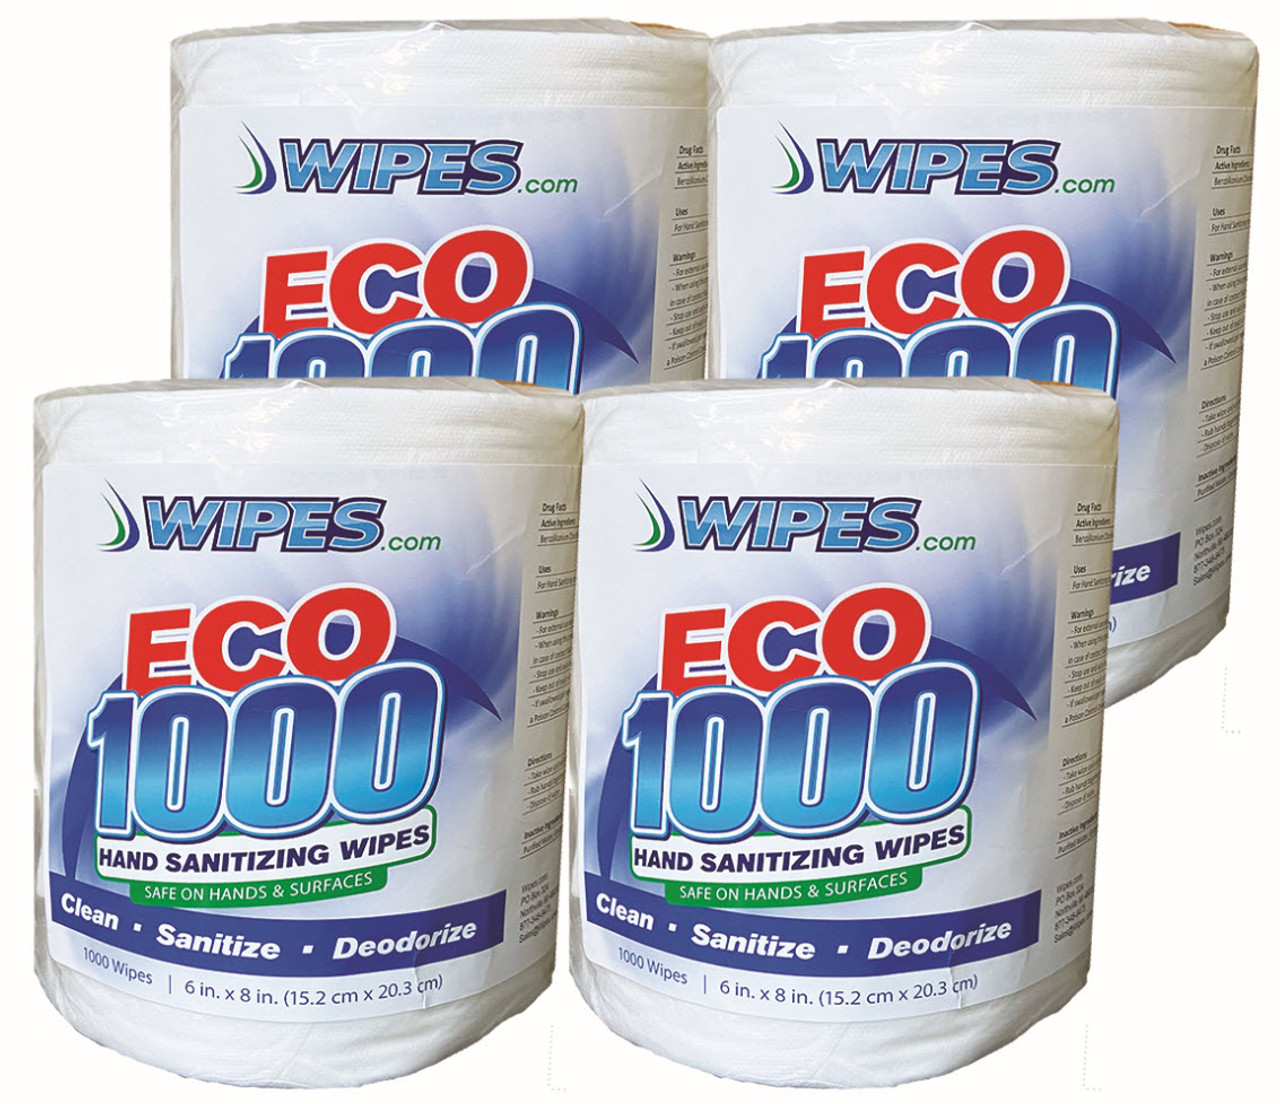 Wipes.com ECO1000 Wipes - 1000 Count/4 Rolls